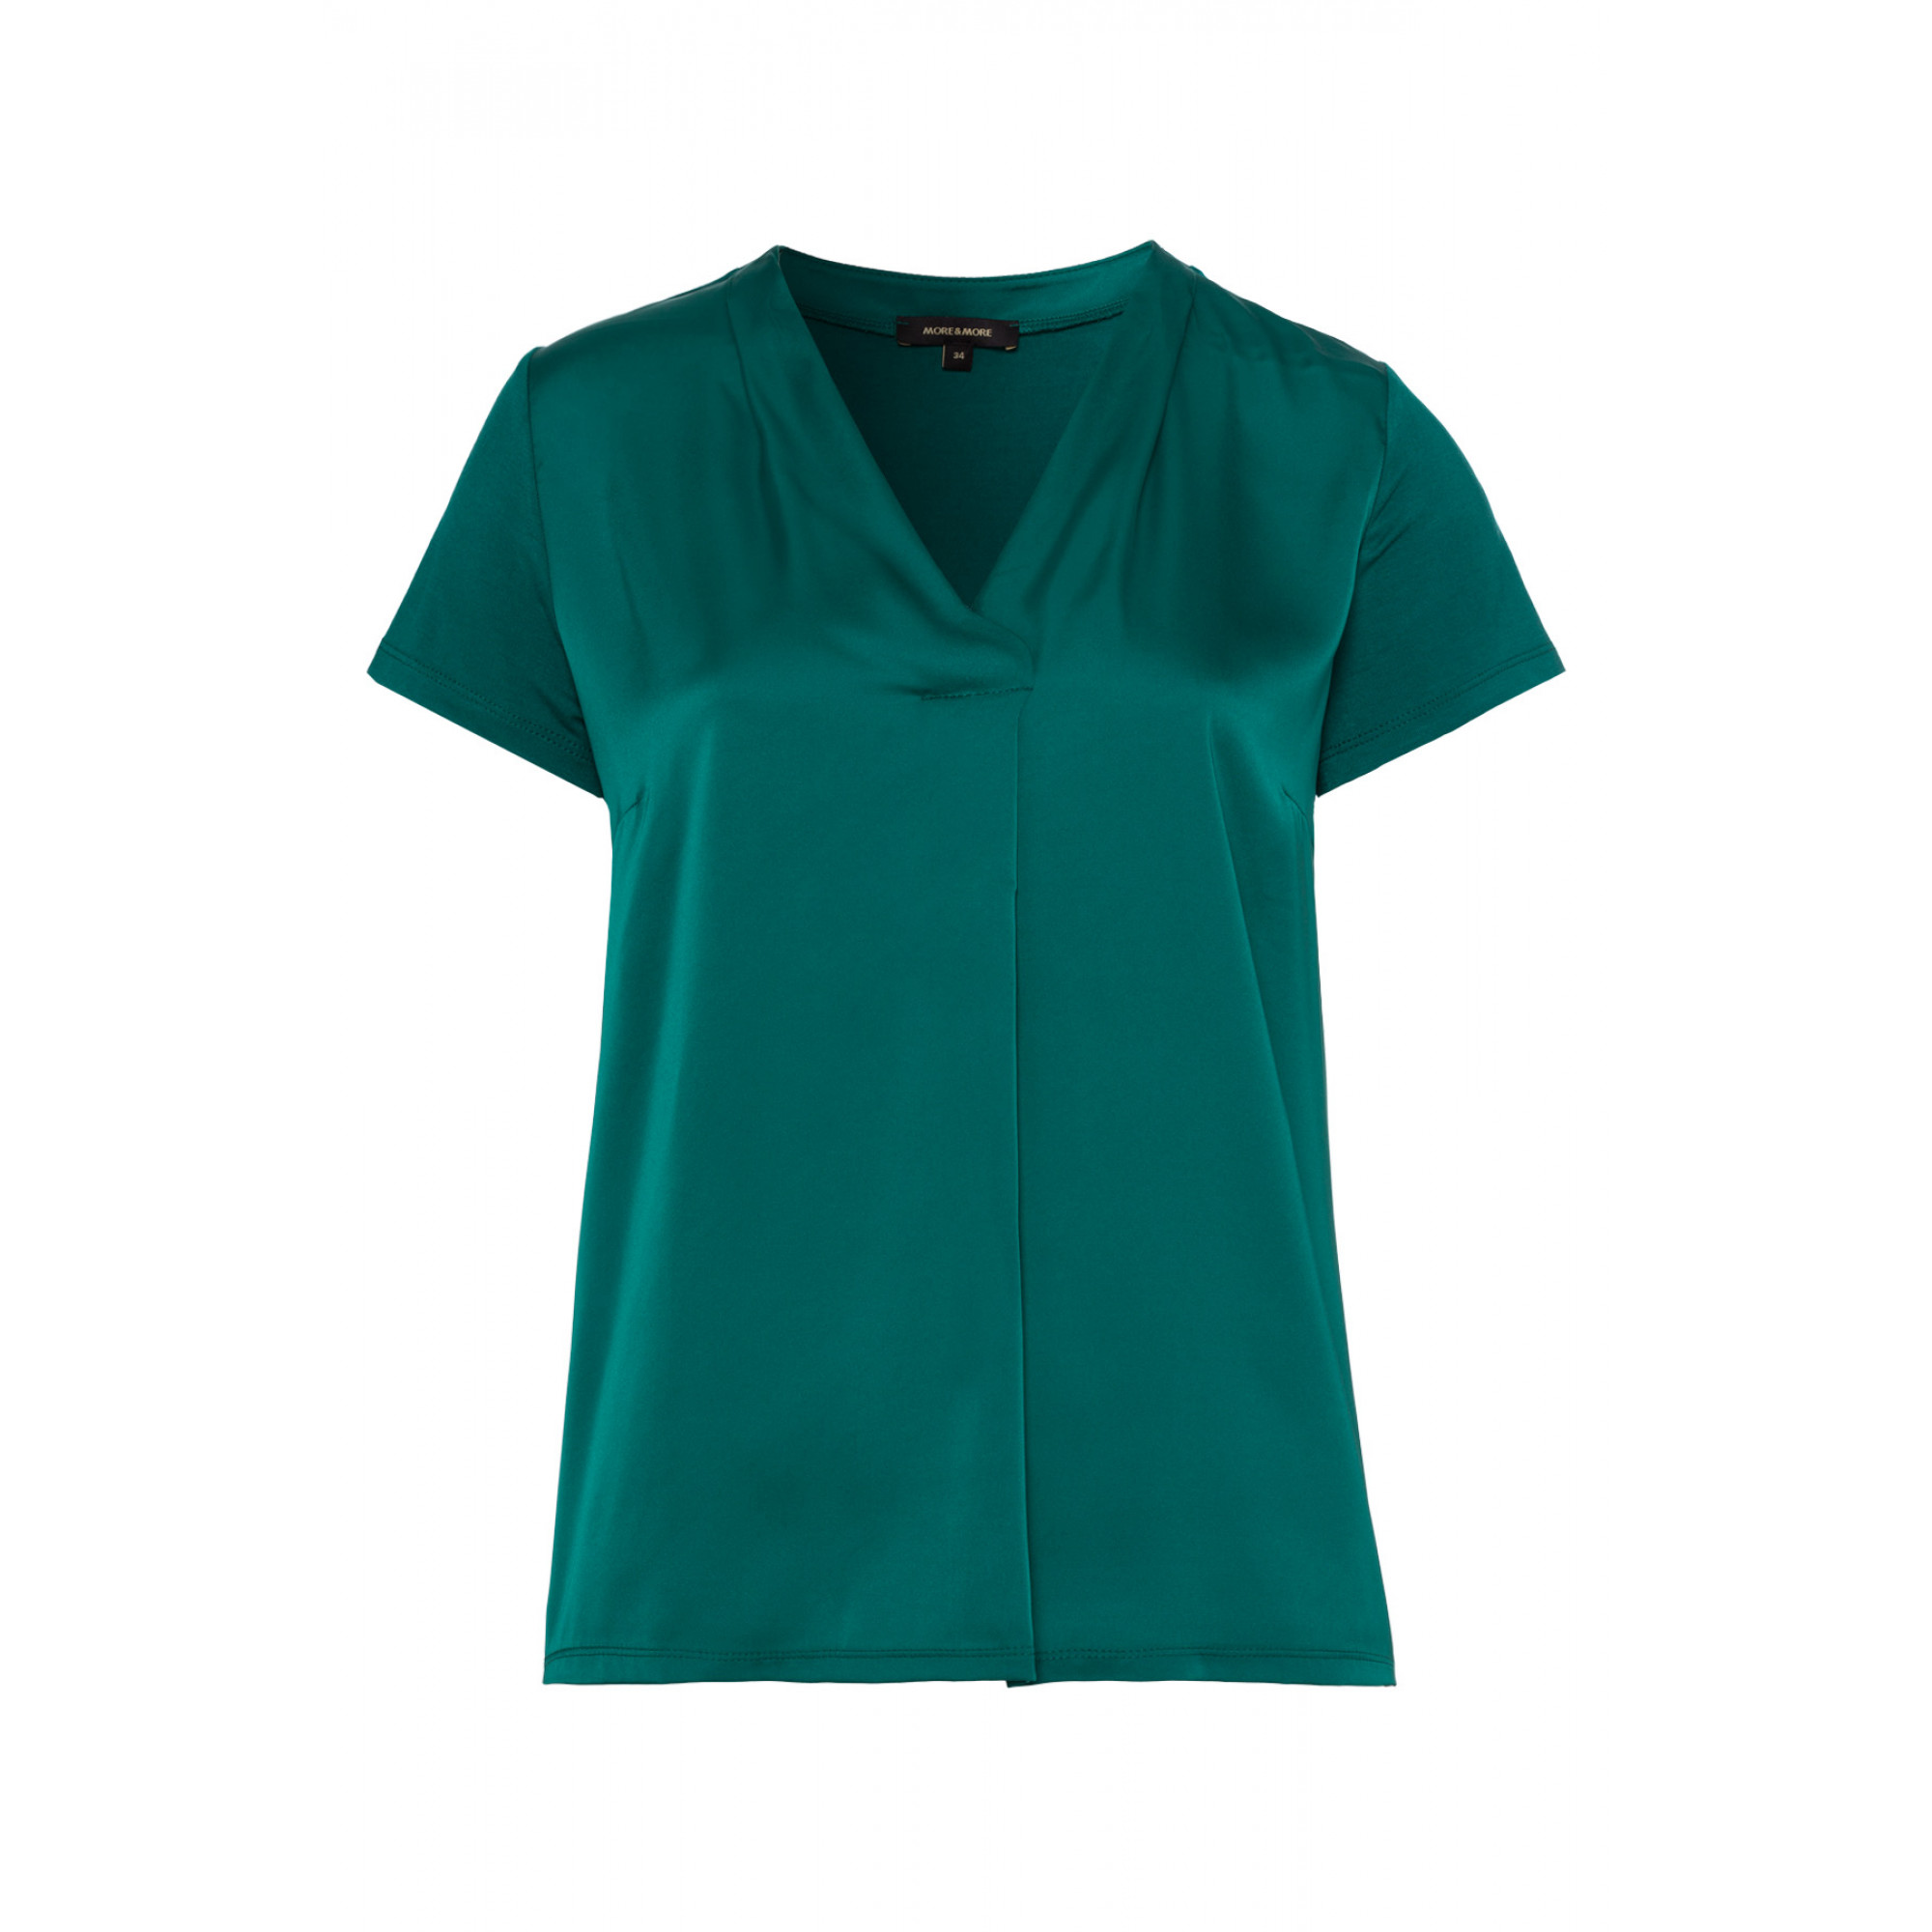 Blusenshirt, Satinfront, emerald green 91090555-0655 1